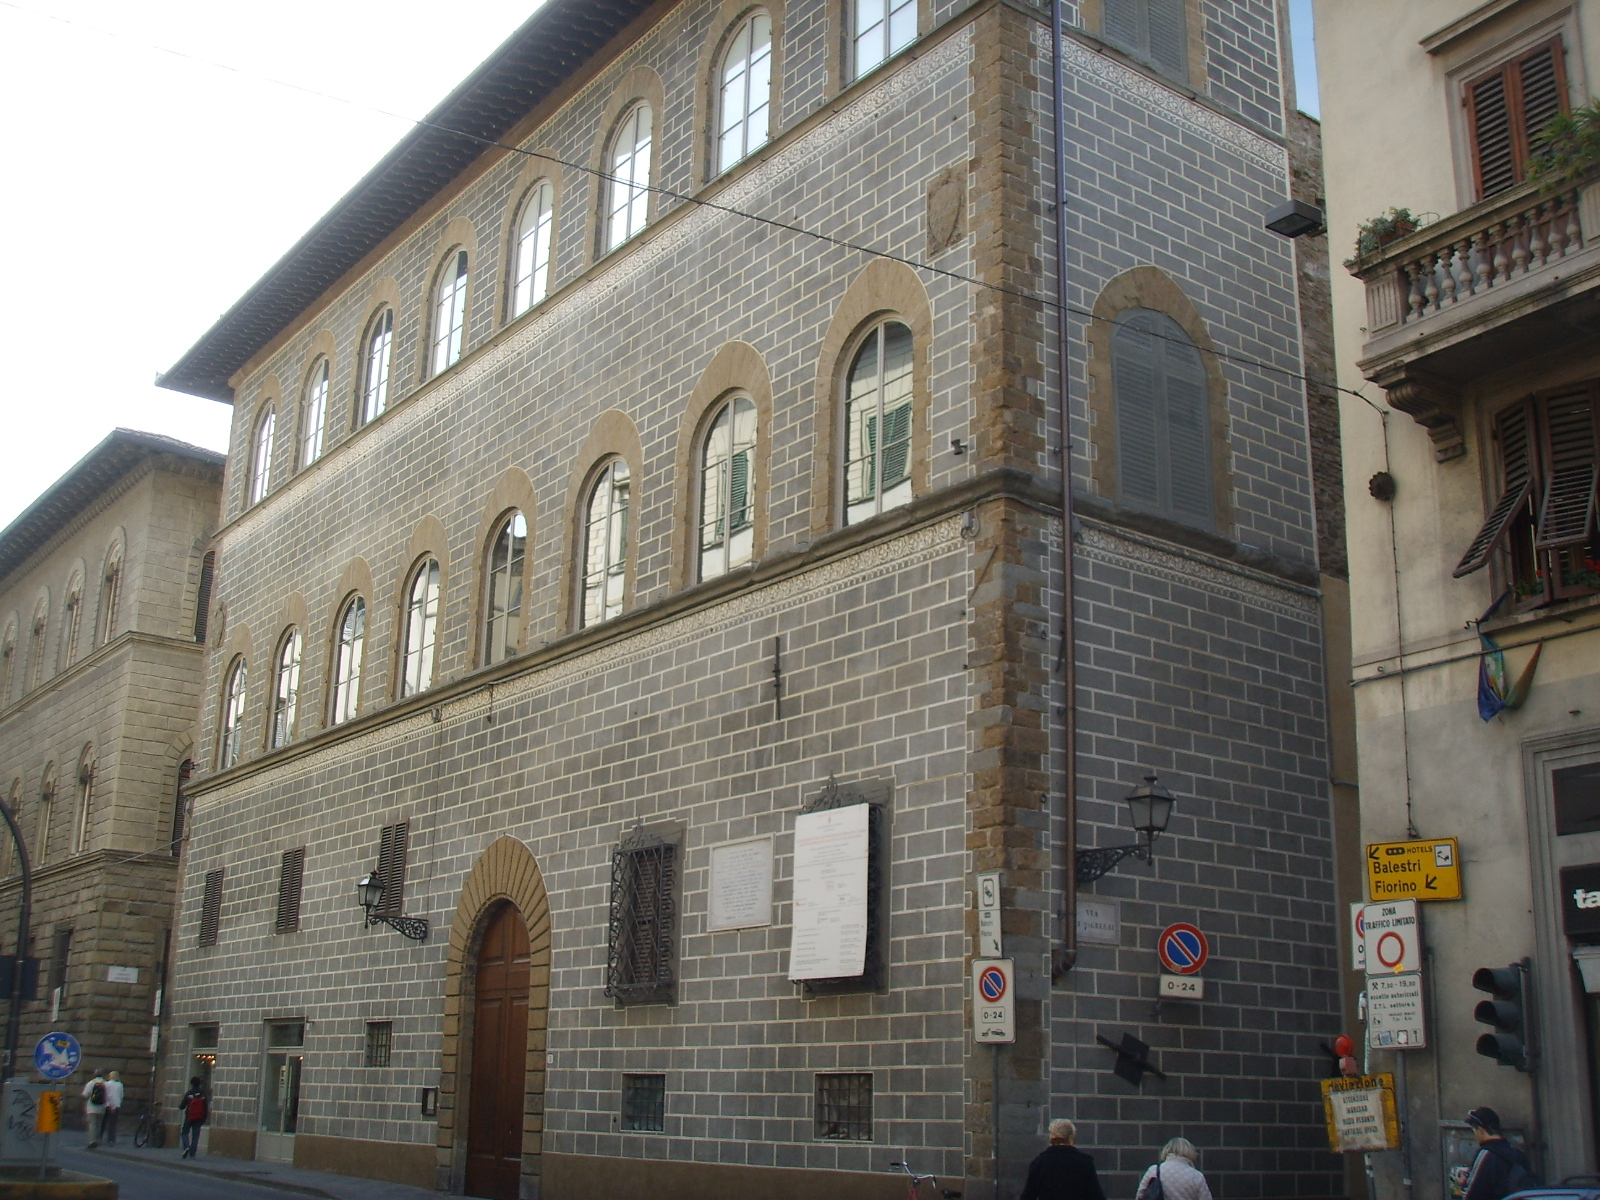 istituto luparia rosignano from florence - photo#18